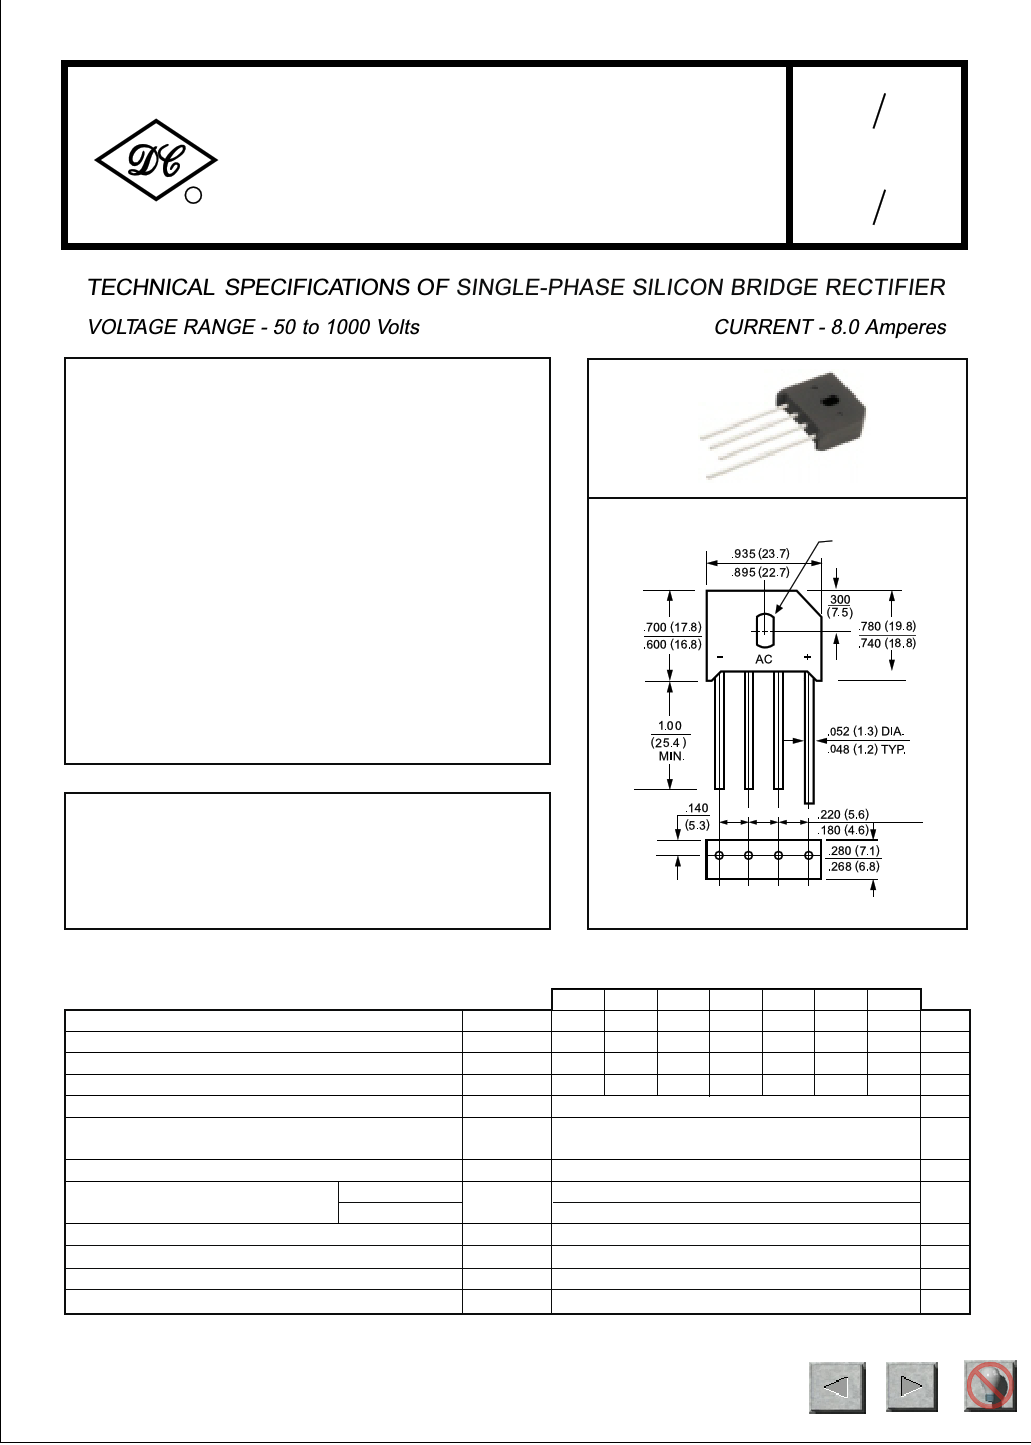 bridge type rectifier diagram kbu8d datasheet pdf ( pinout ) - technical specifications ...